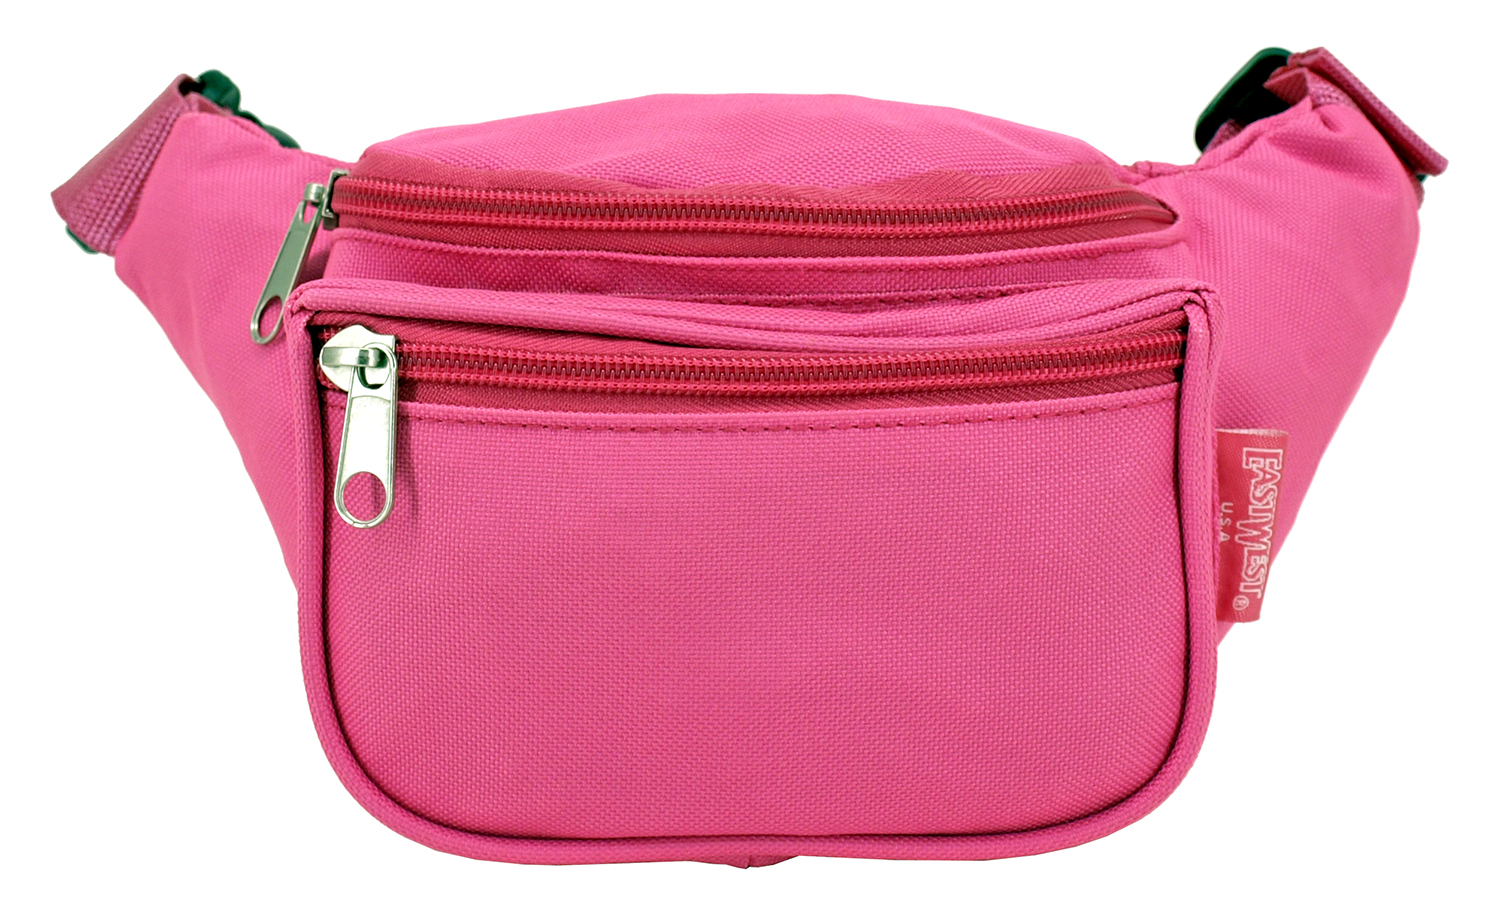 Medium Daily Fanny Pack with Pouch - Hot Pink